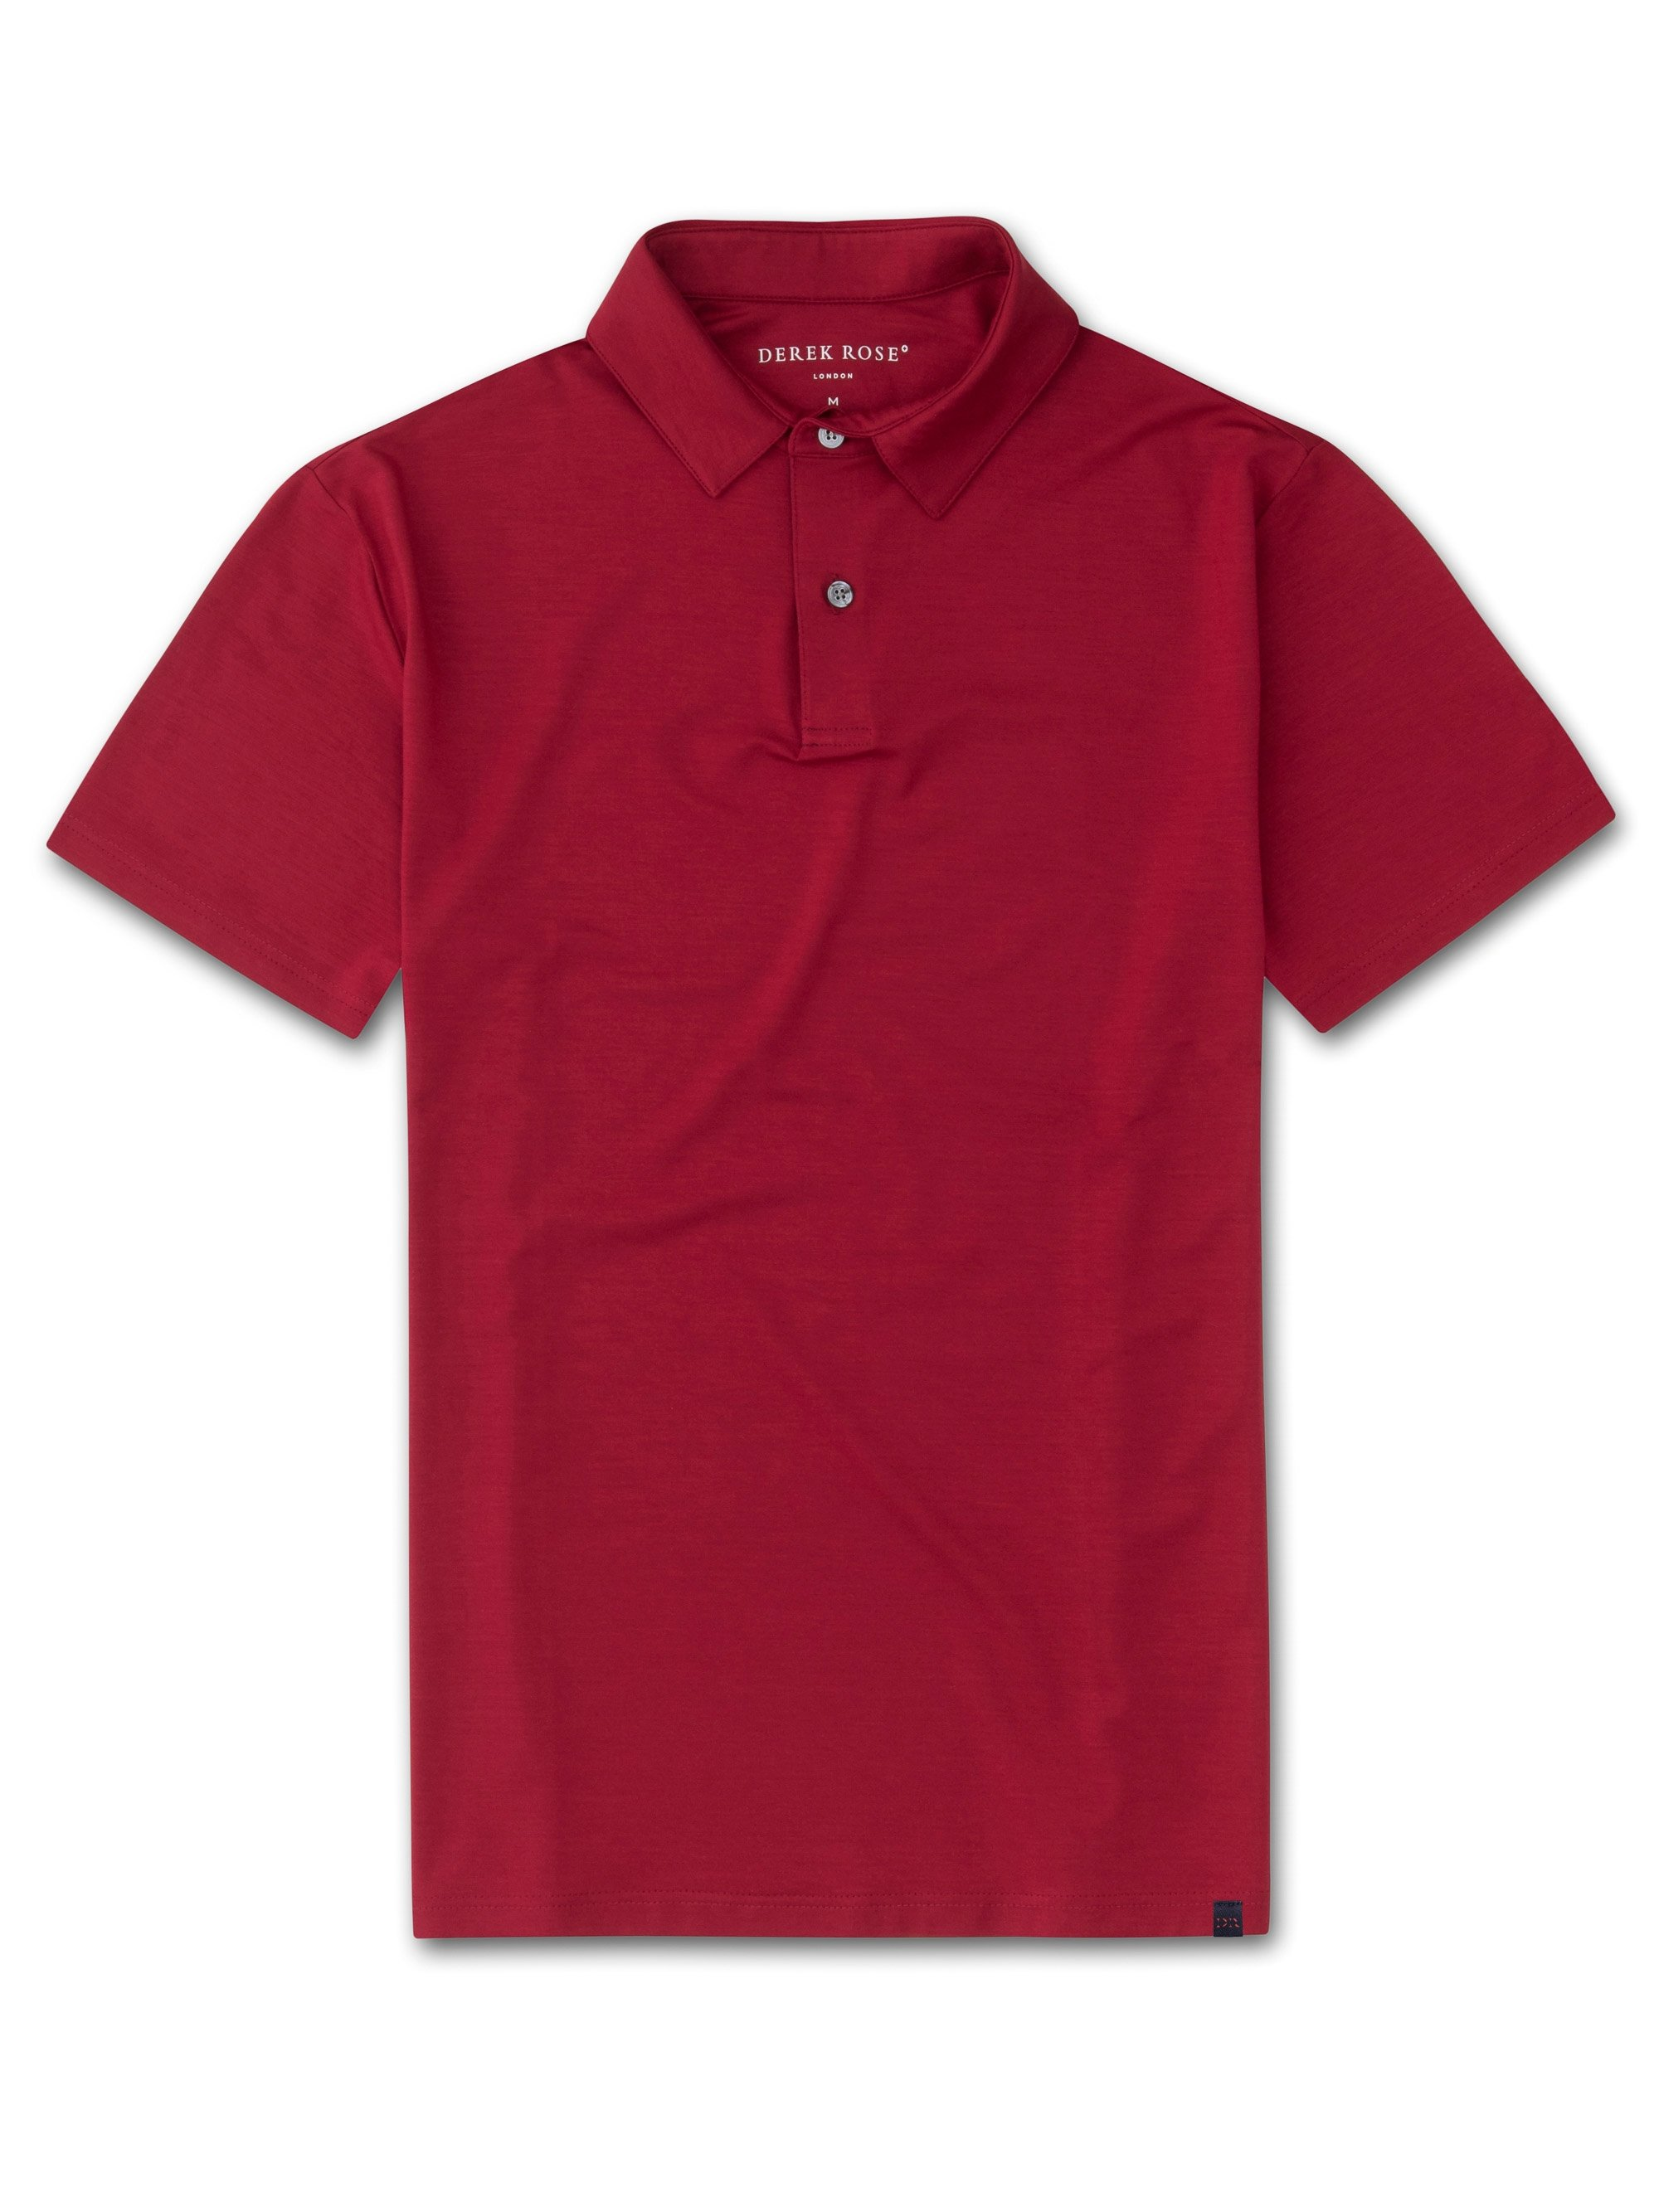 Men's Short Sleeve Polo Shirt Basel 8 Micro Modal Stretch Red